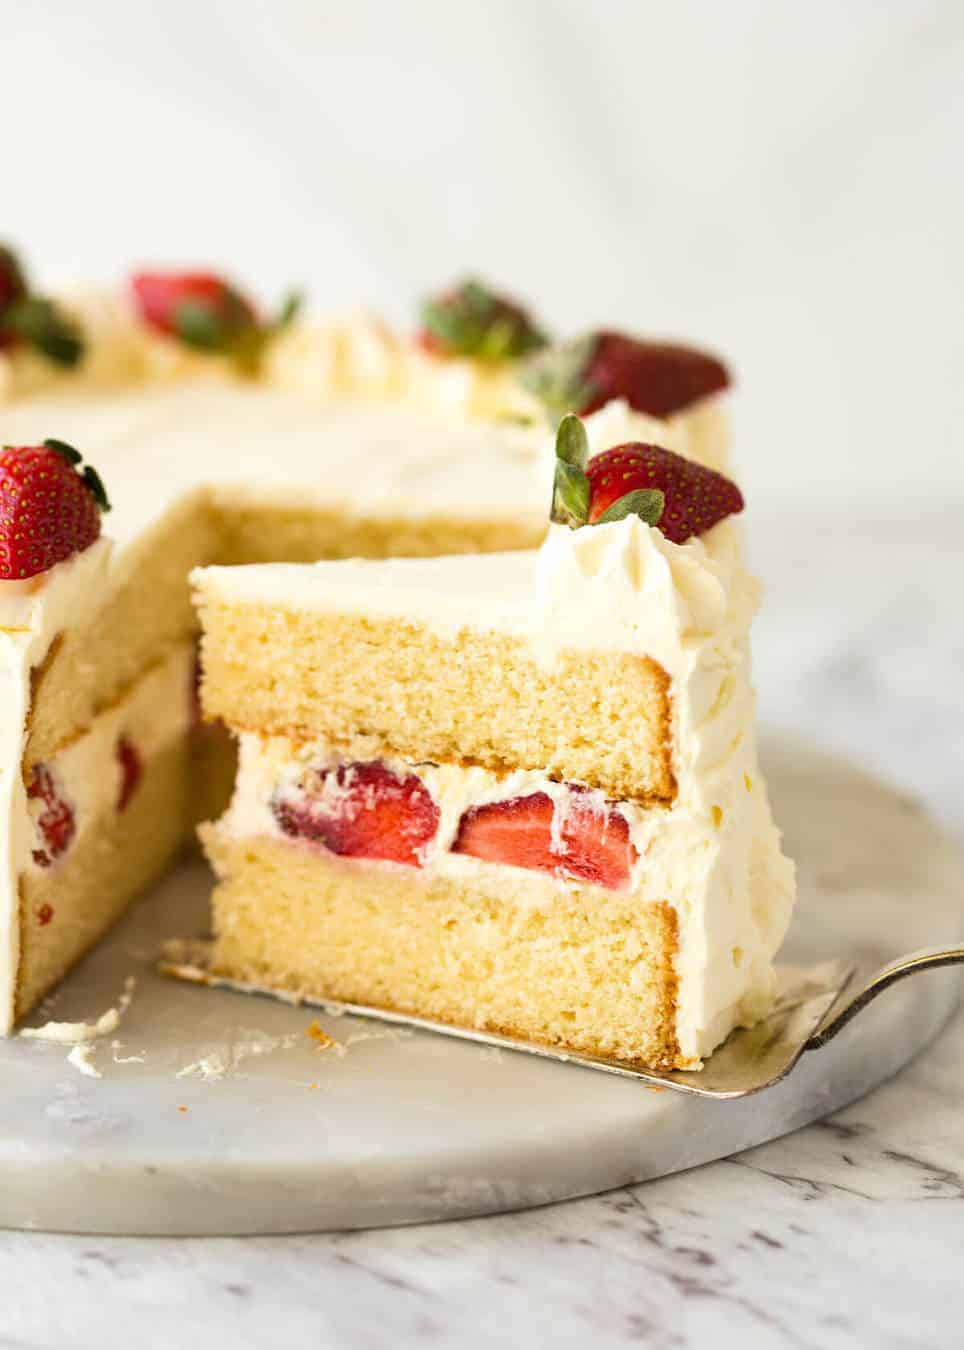 Sponge Cake With Sour Cream